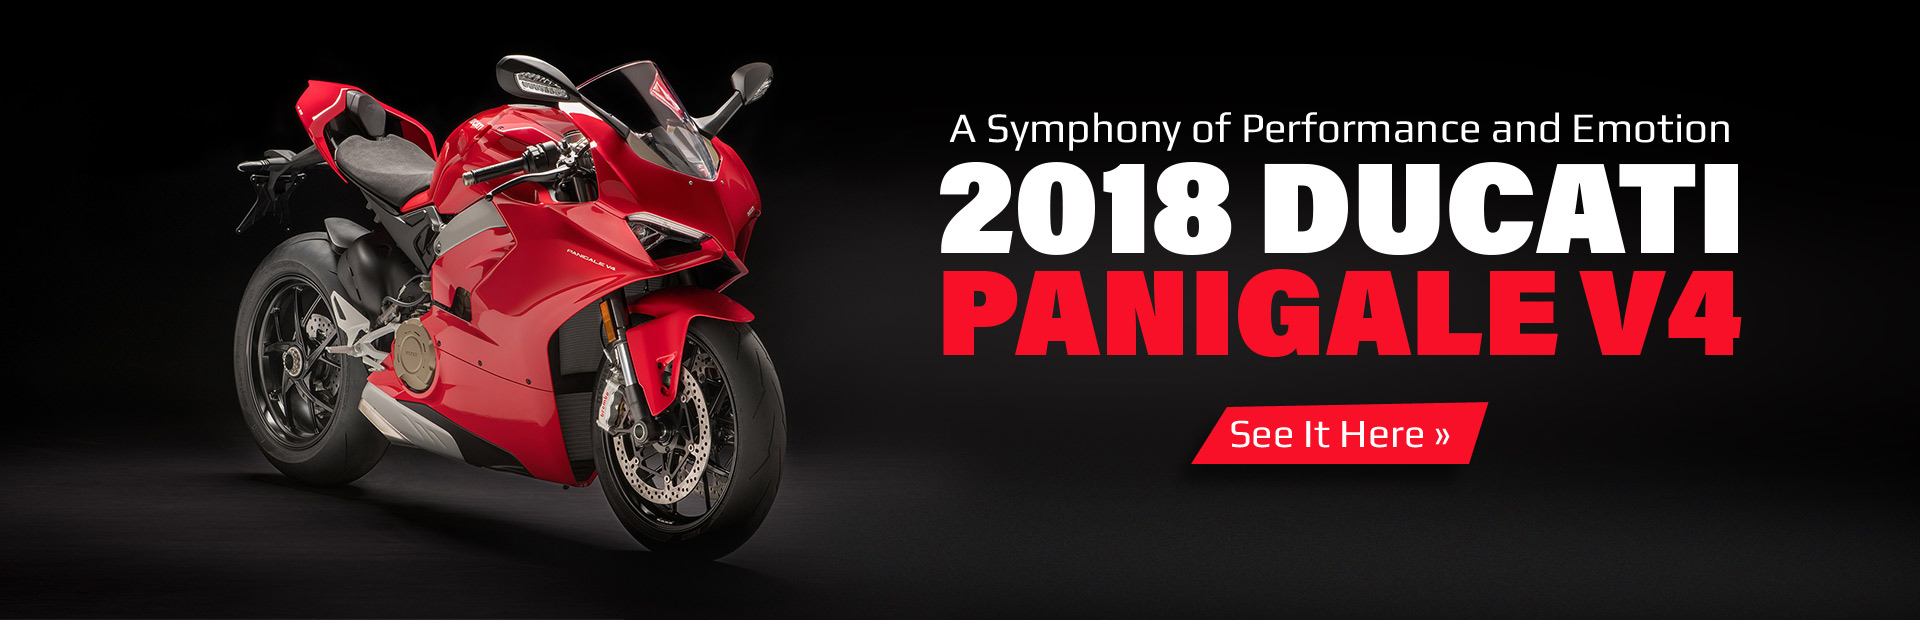 2018 Ducati Panigale V4: Click here to view the model.